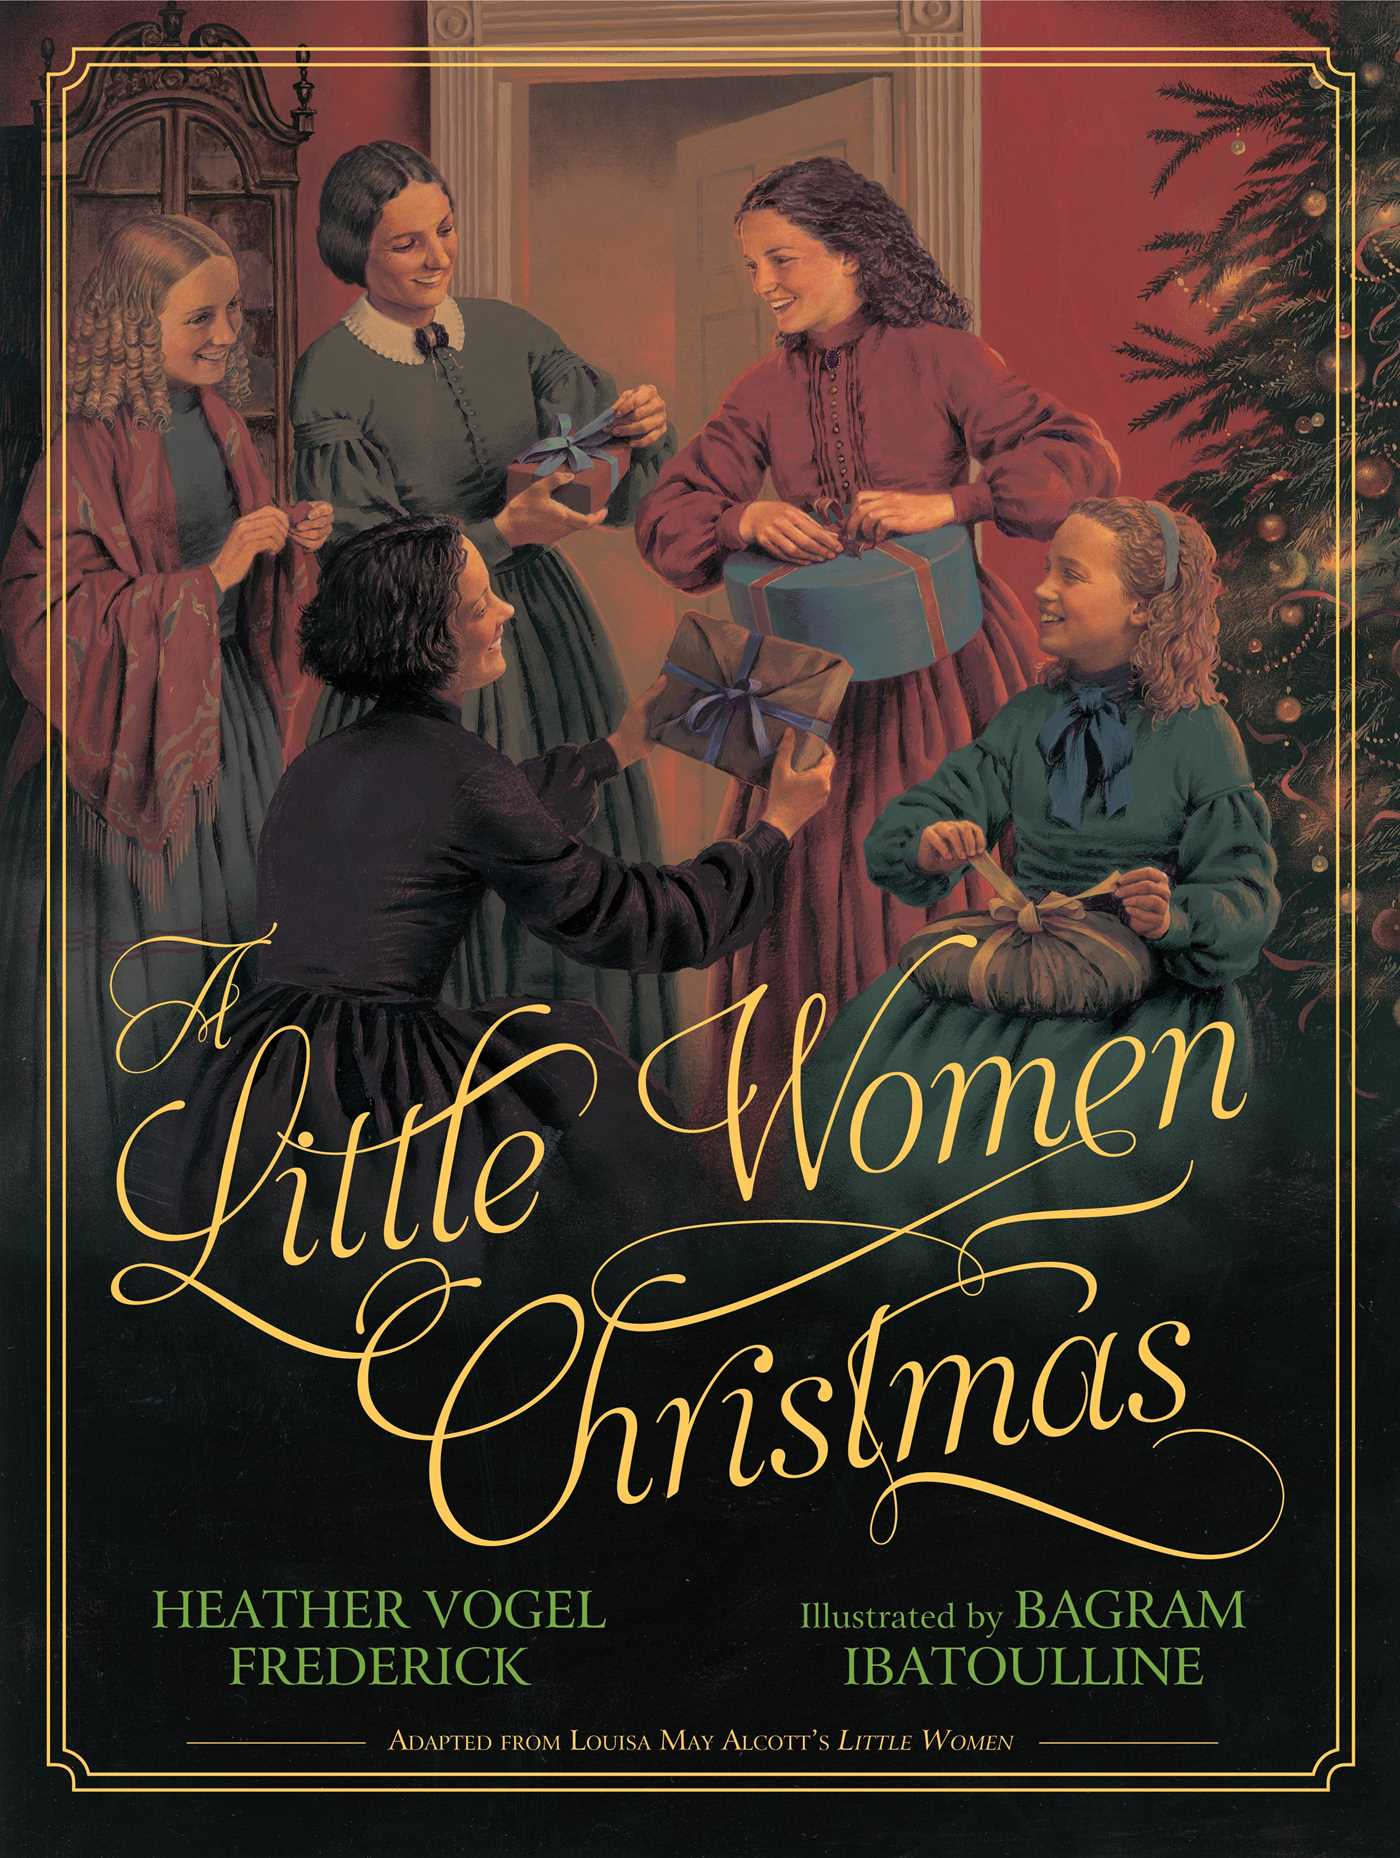 A-little-women-christmas-9781442413597_hr